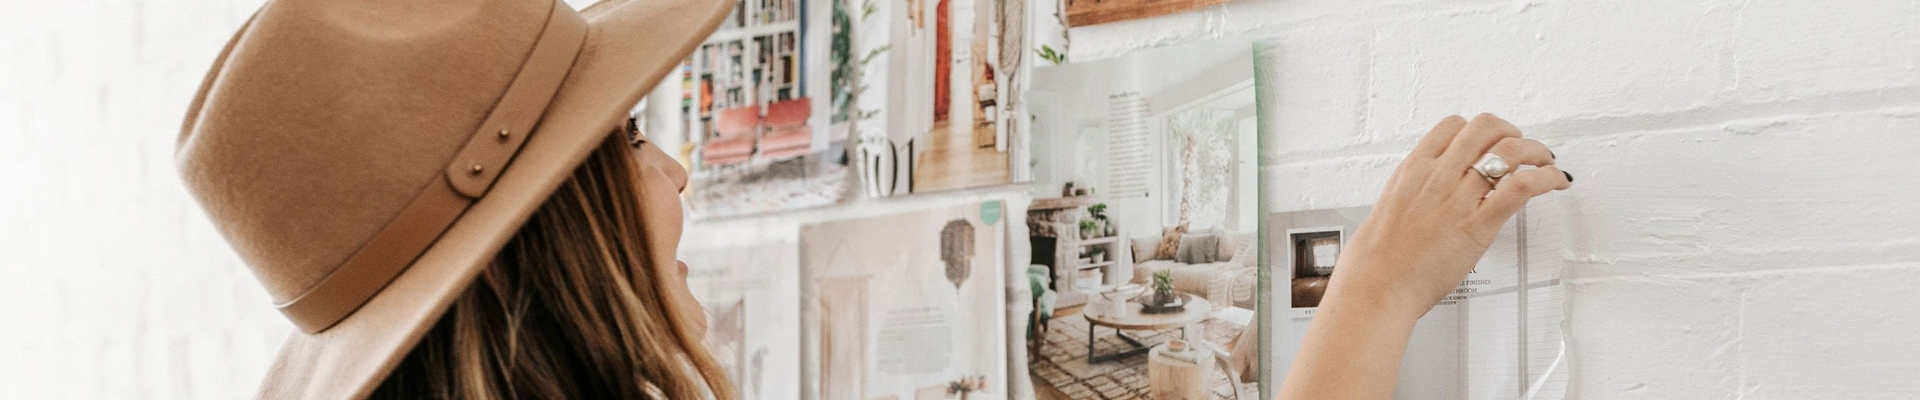 Jessica Viscarde's Top 5 Tips when Renovating on a Budget.